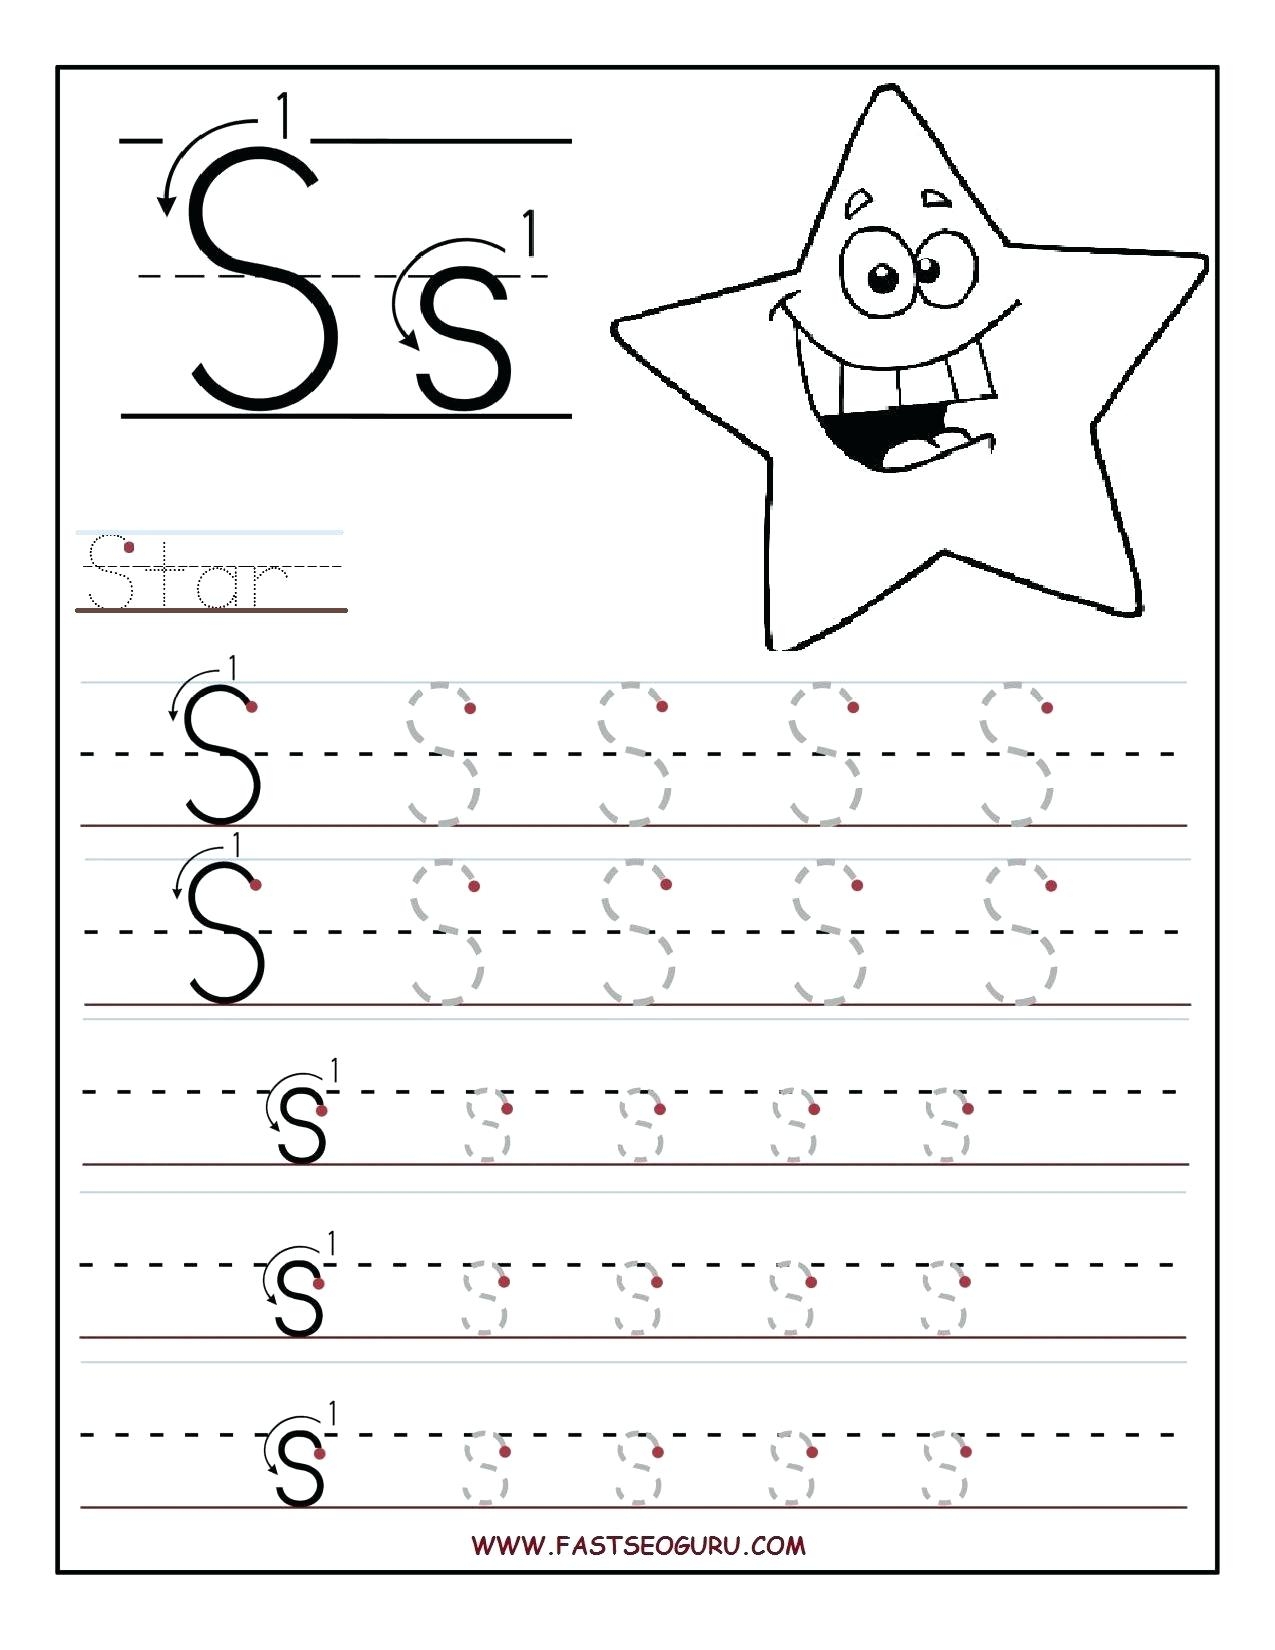 Printable Name Tracing Worksheets